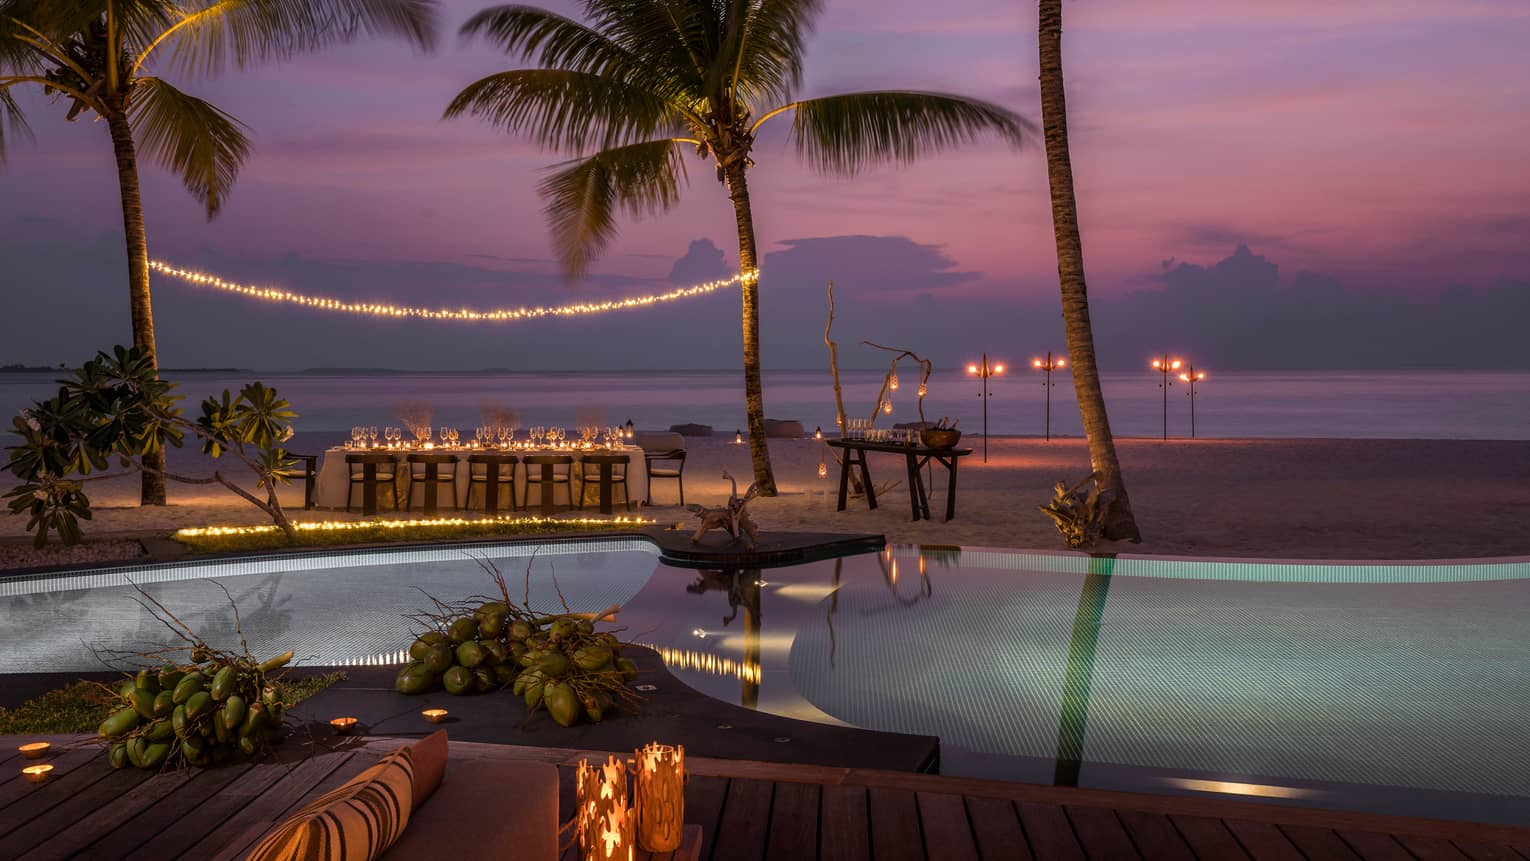 String of lights between palm tree over private dining table on beach by swimming pool at sunset